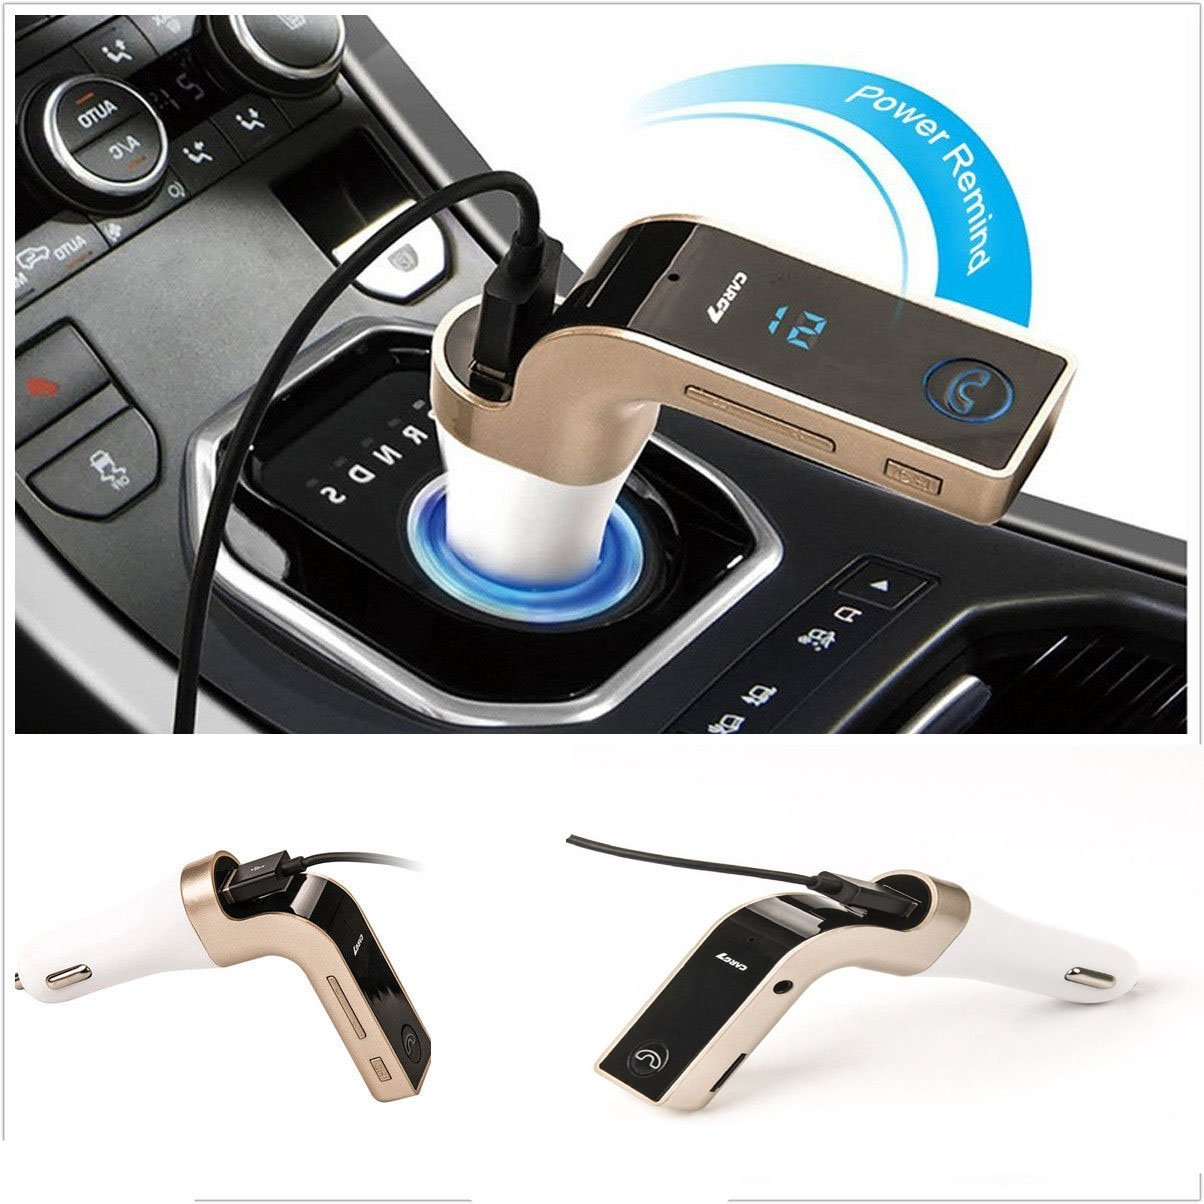 Bluetooth FM Transmitter,Wireless Radio Transmmitter MP3 Player Handfree Calling with USB for iPhone,Samsung,LG,HTC,Motorola,Sony Android Smartphone